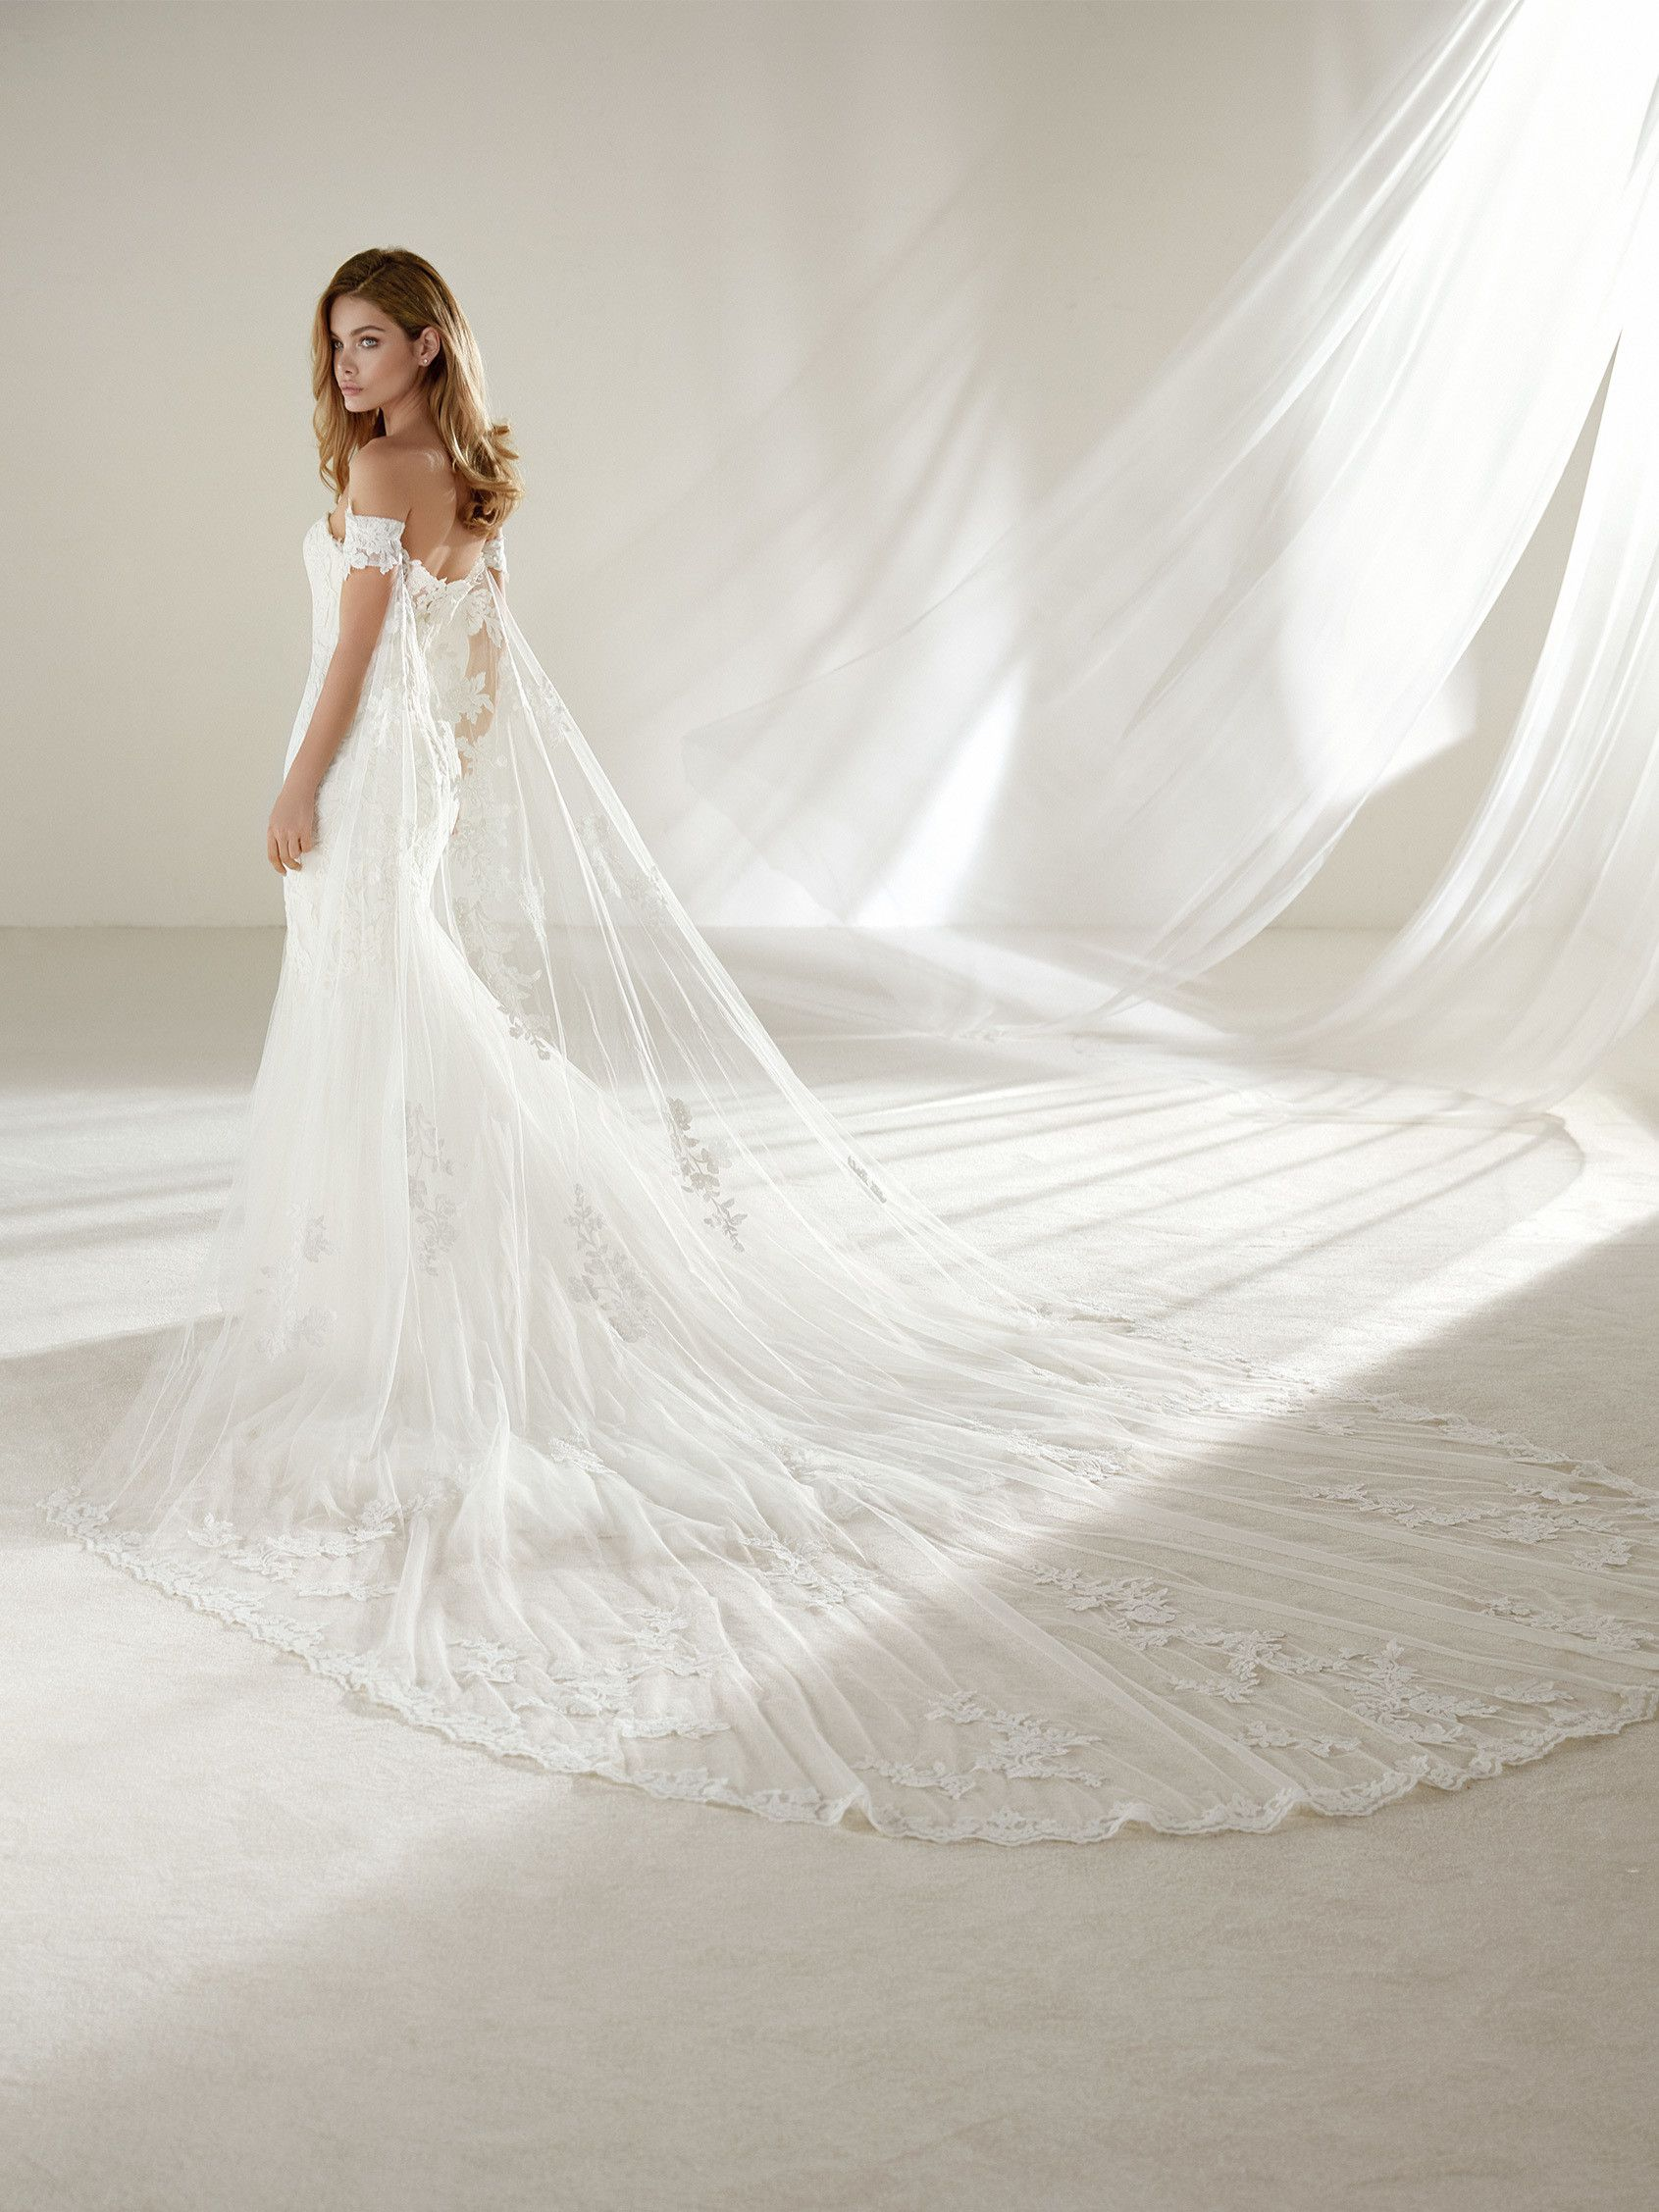 fb13be0fc83 Drimea  Wedding dress in lace for petite and slender brides ...